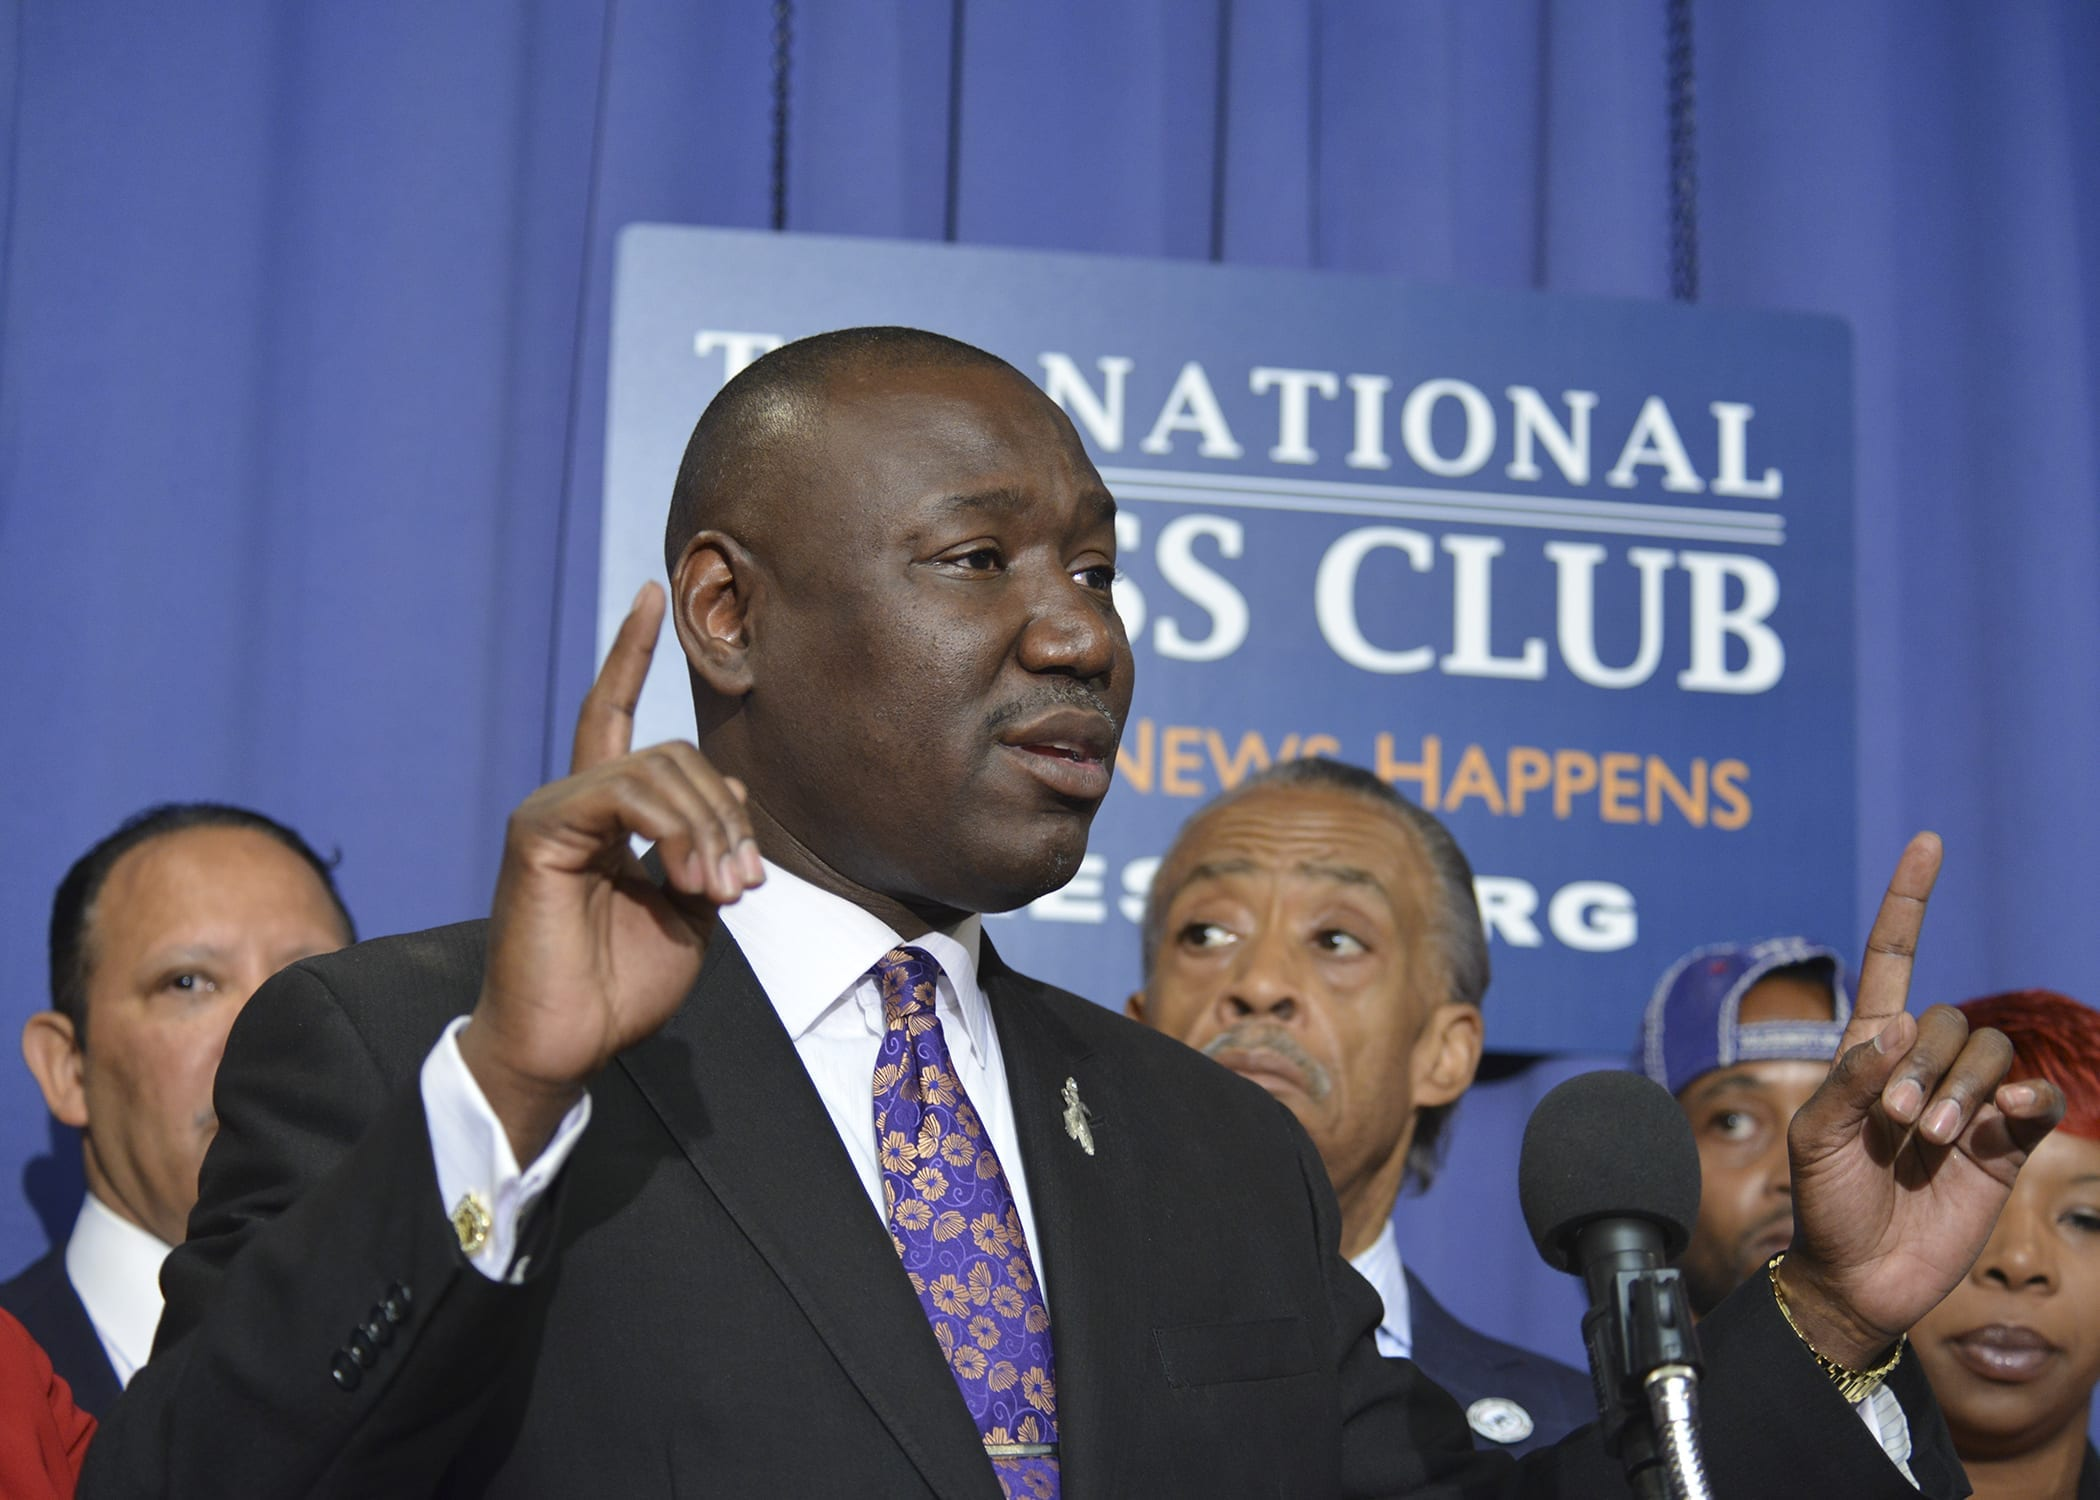 Benjamin Crump represented five of the 13 women involved in the Daniel Holtzclaw case. This photo was taken during a press conference about the shooting death of Michael Brown and police violence in the U.S. at the National Press Club in Washington, D.C. (Freddie Allen/AMG/NNPA)